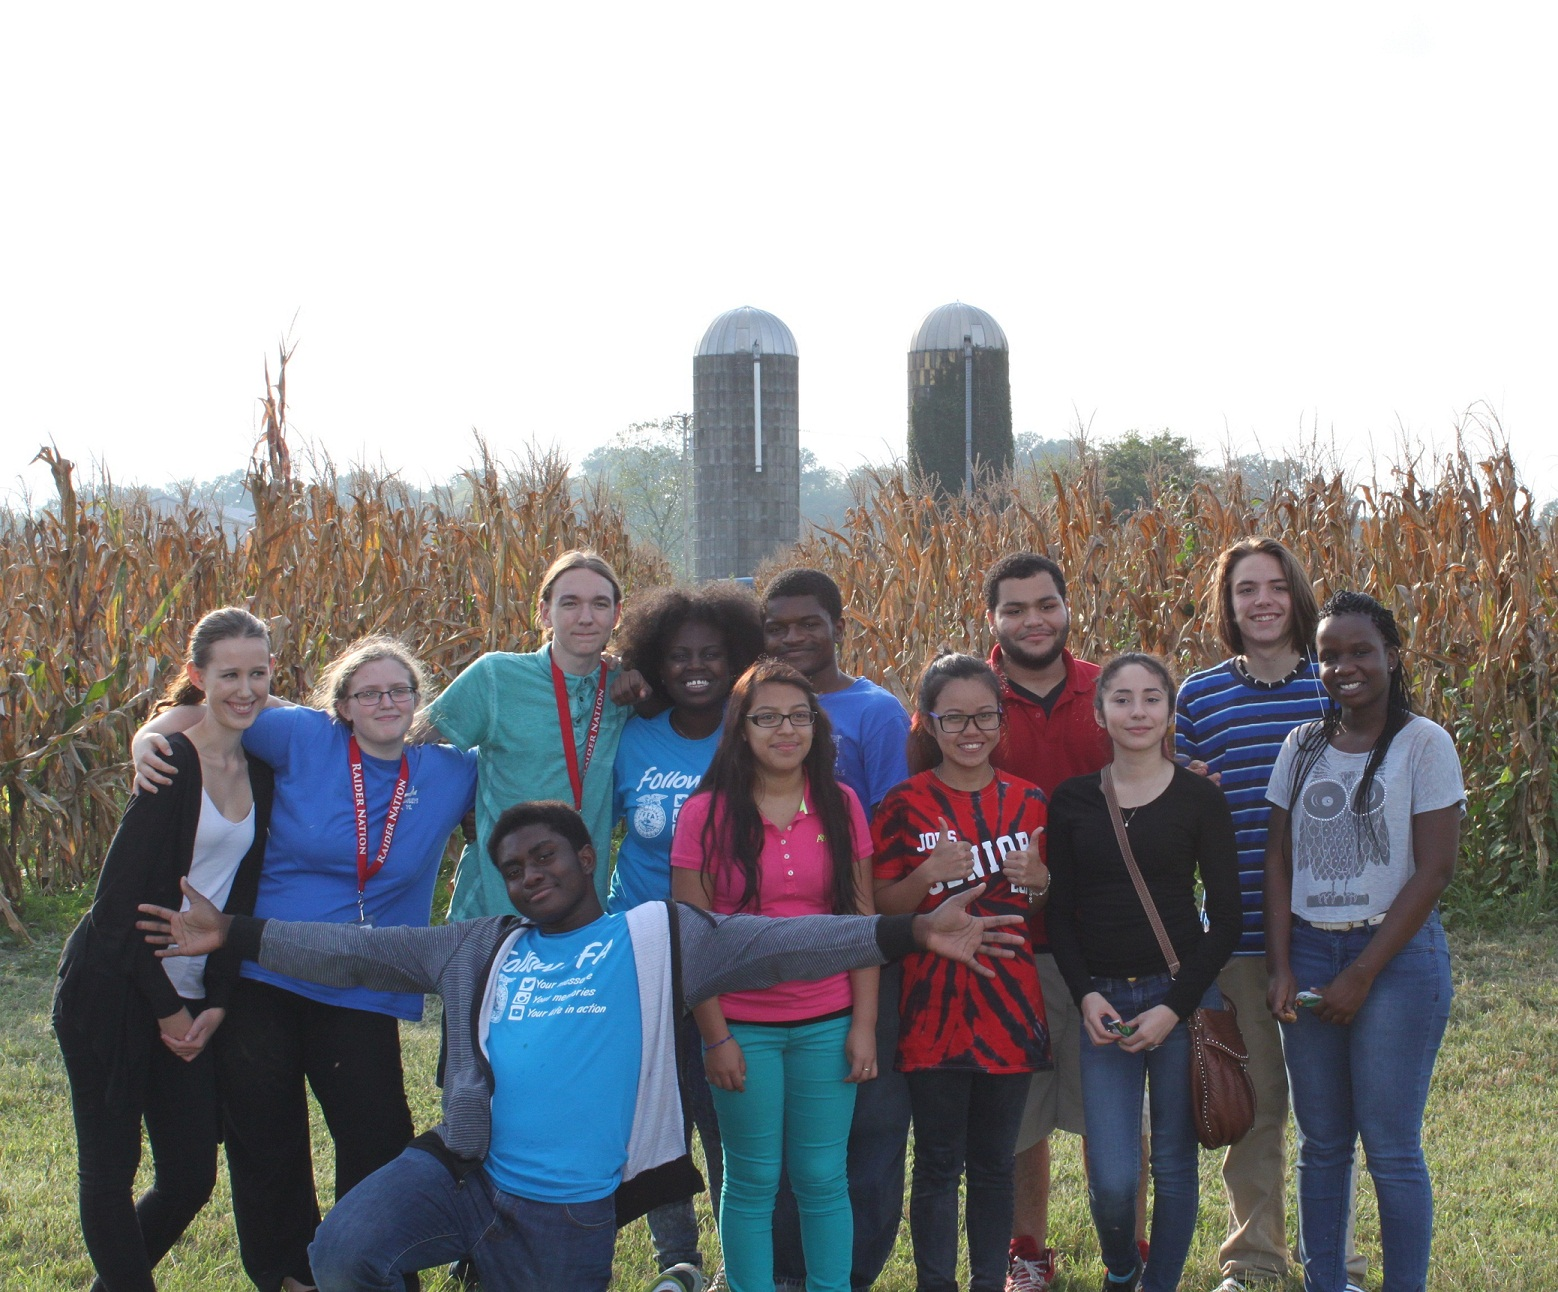 FFA members from Glencliff, McGavock, Overton, and Whites Creek pose as a group before making their way into the soil judging pits.